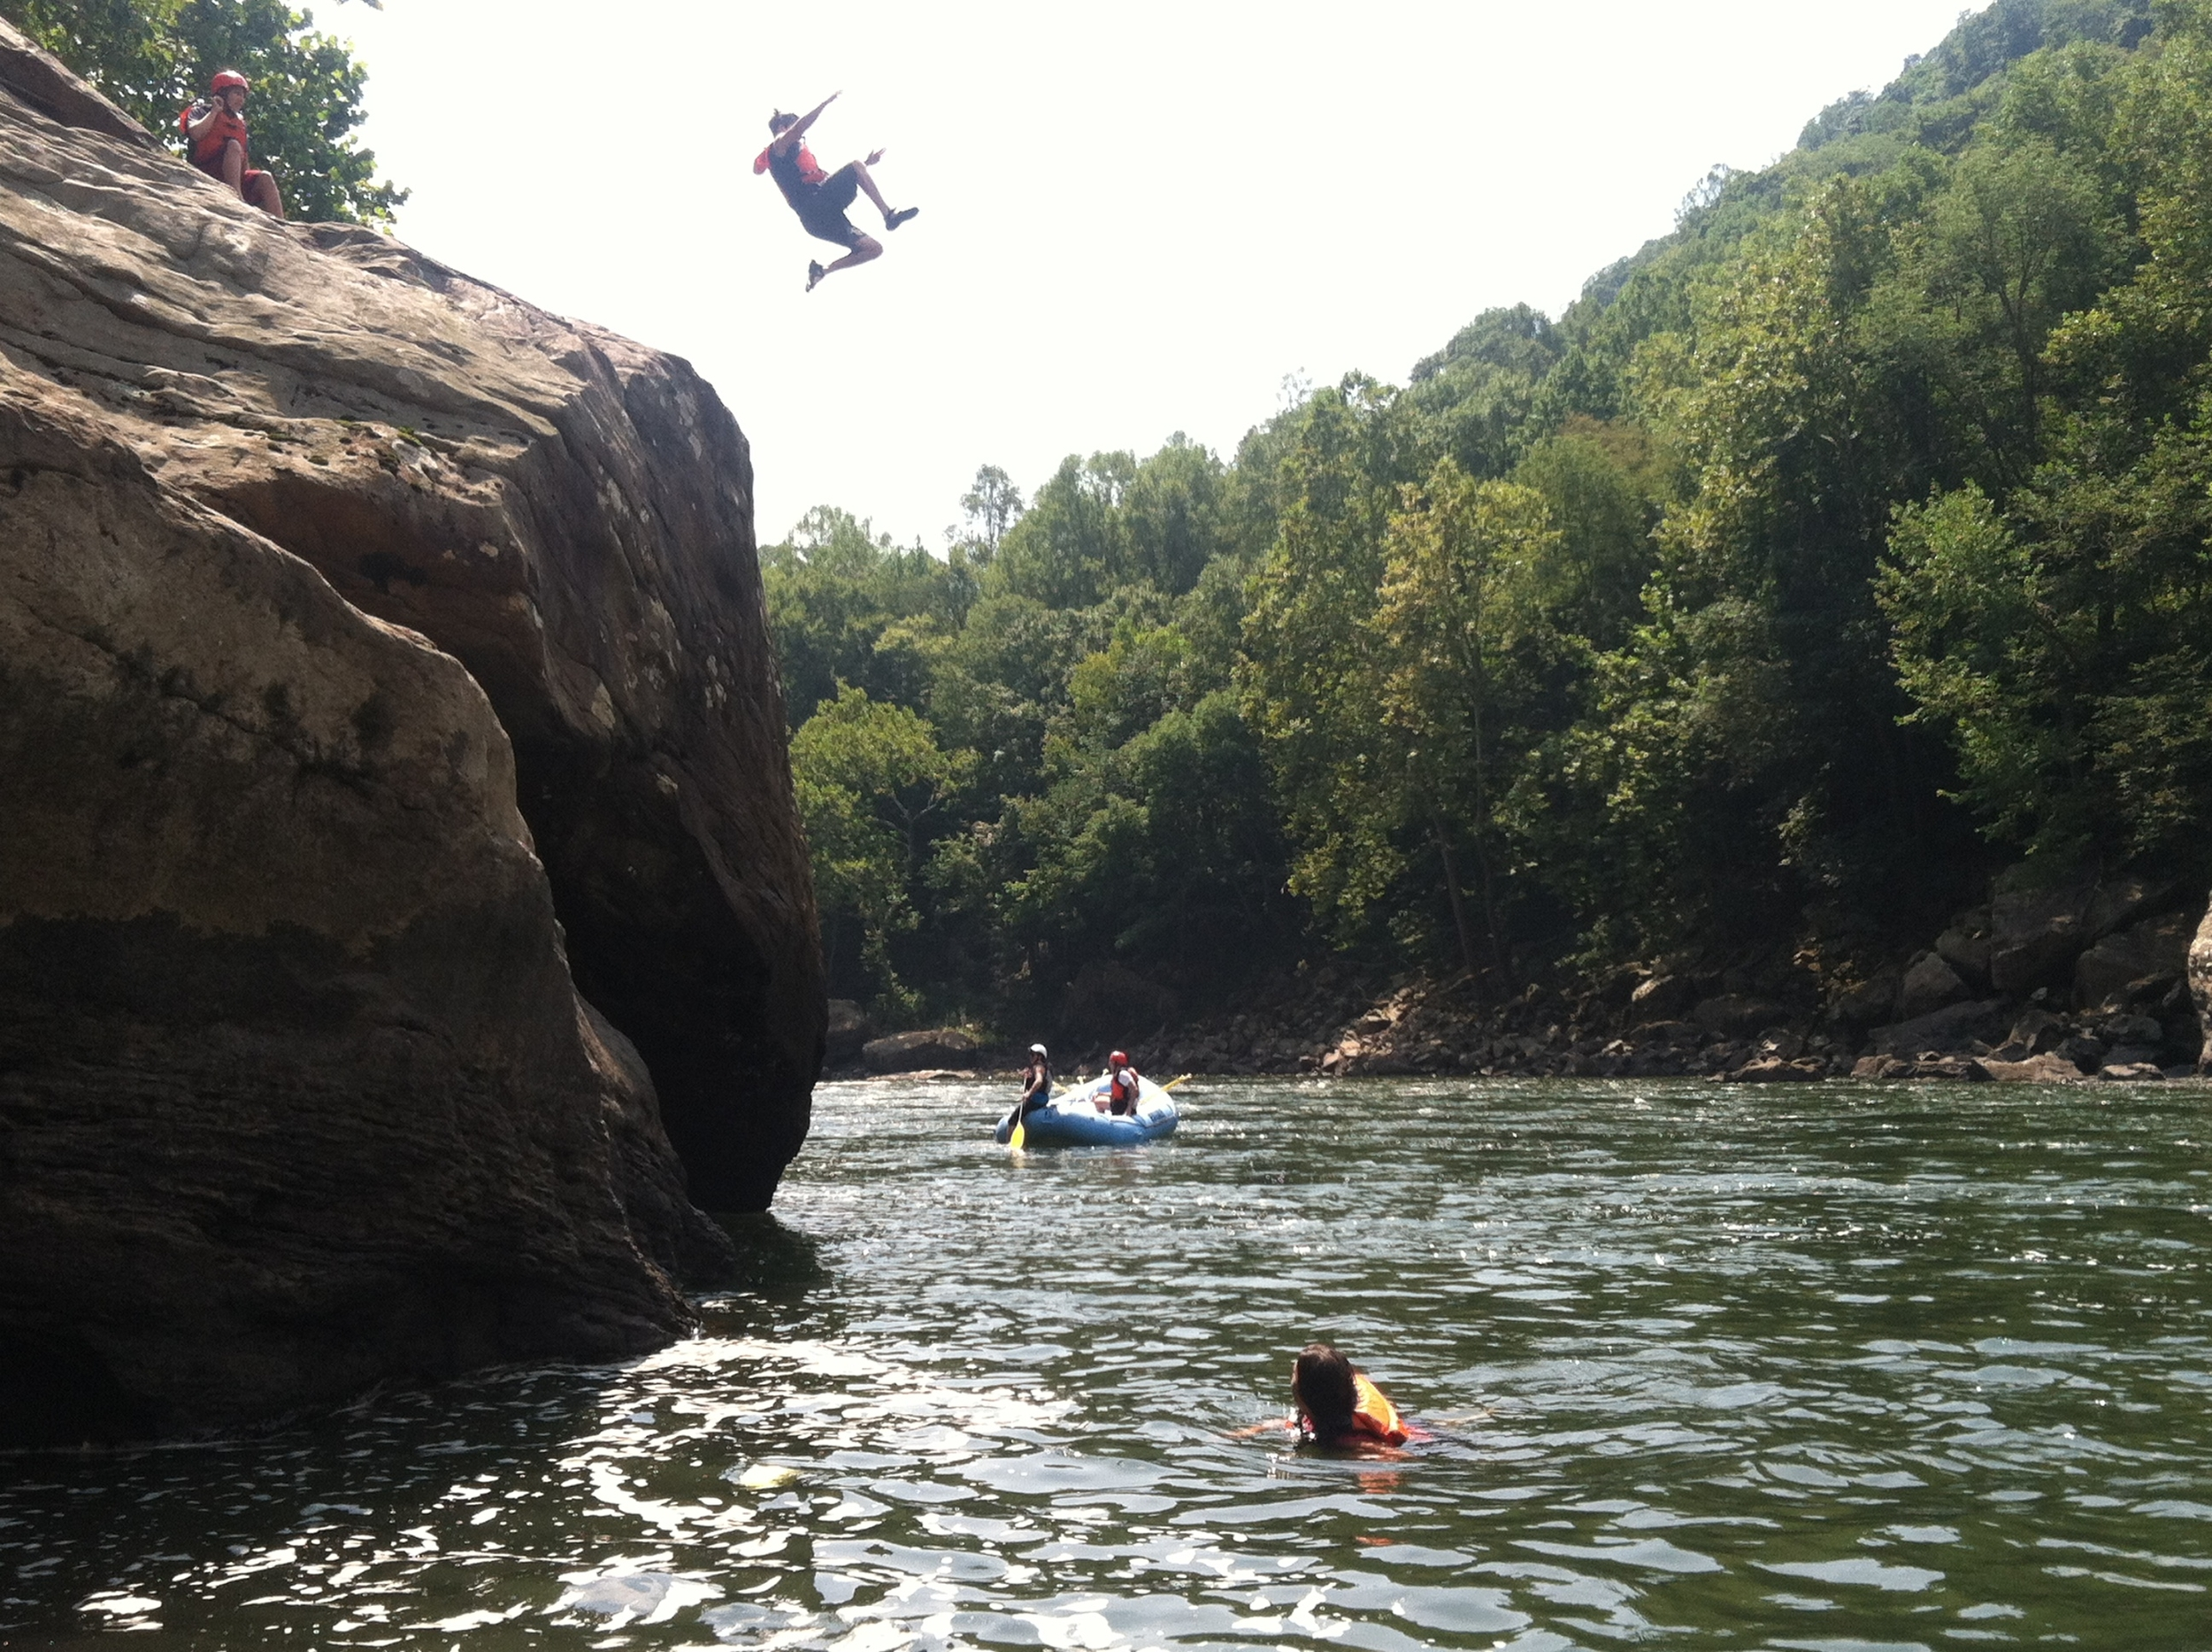 Sweet Cliff Jumping Pic.JPG